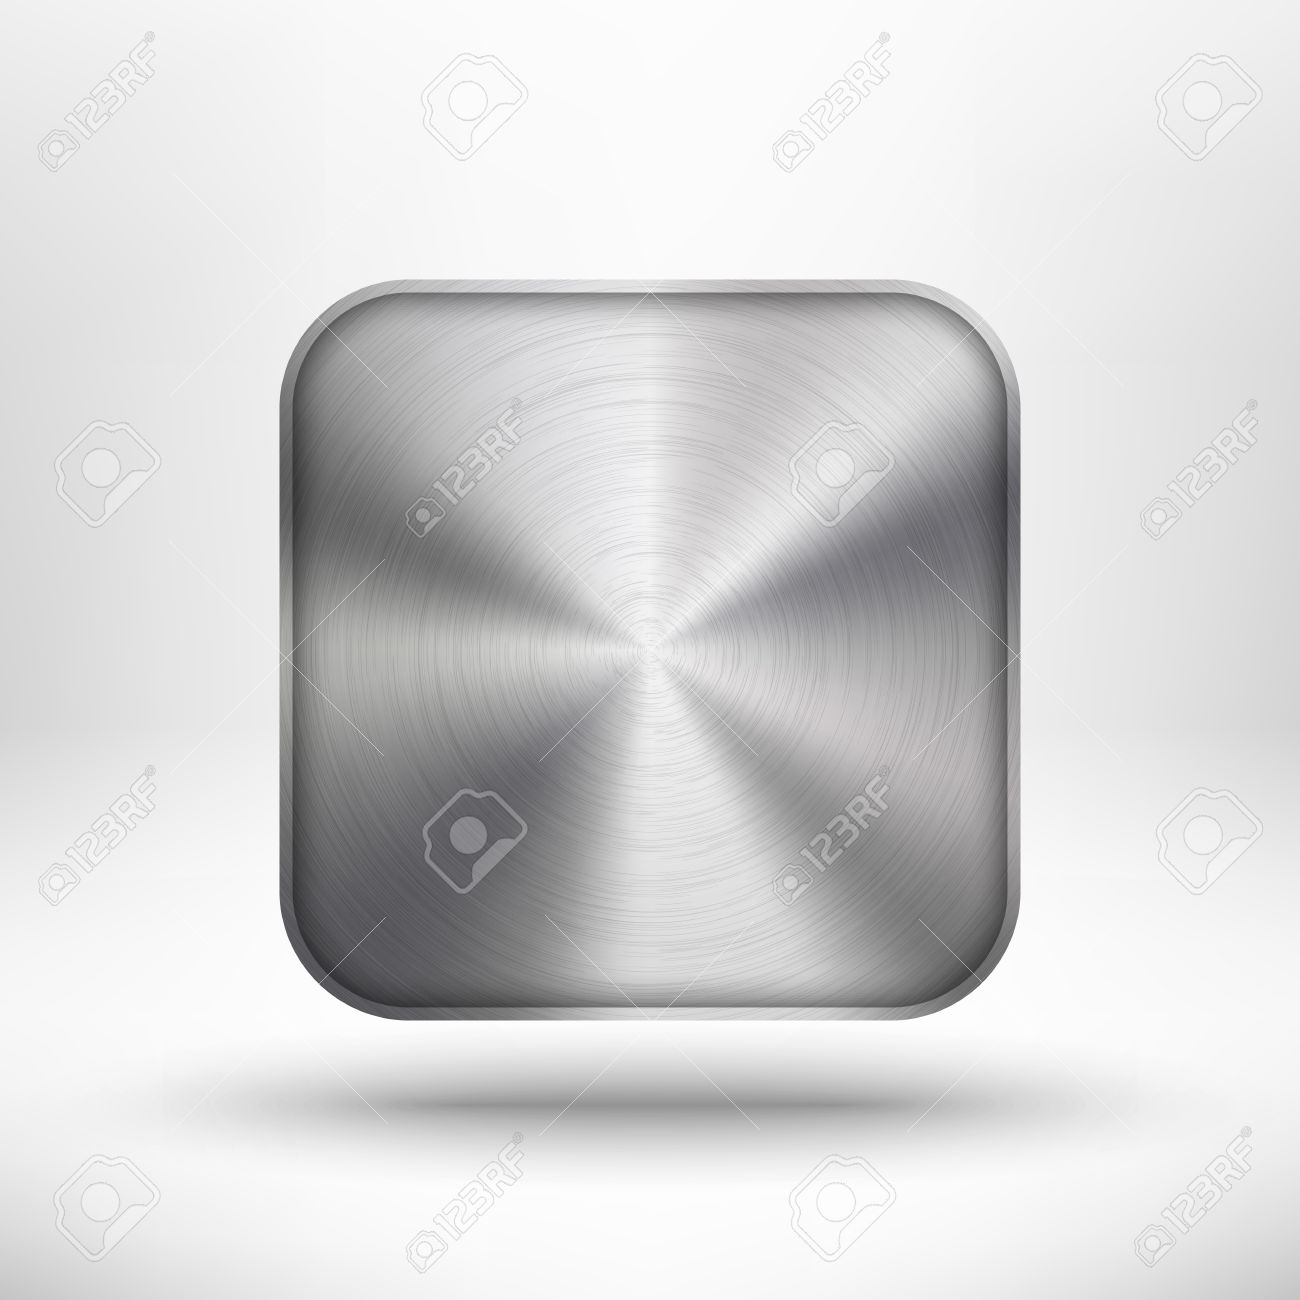 Abstract technology icon button with metal texture, stainless steel, chrome, silver, realistic shadow and light background for internet sites, web user interfaces, ui and applications, app Stock Vector - 16447133